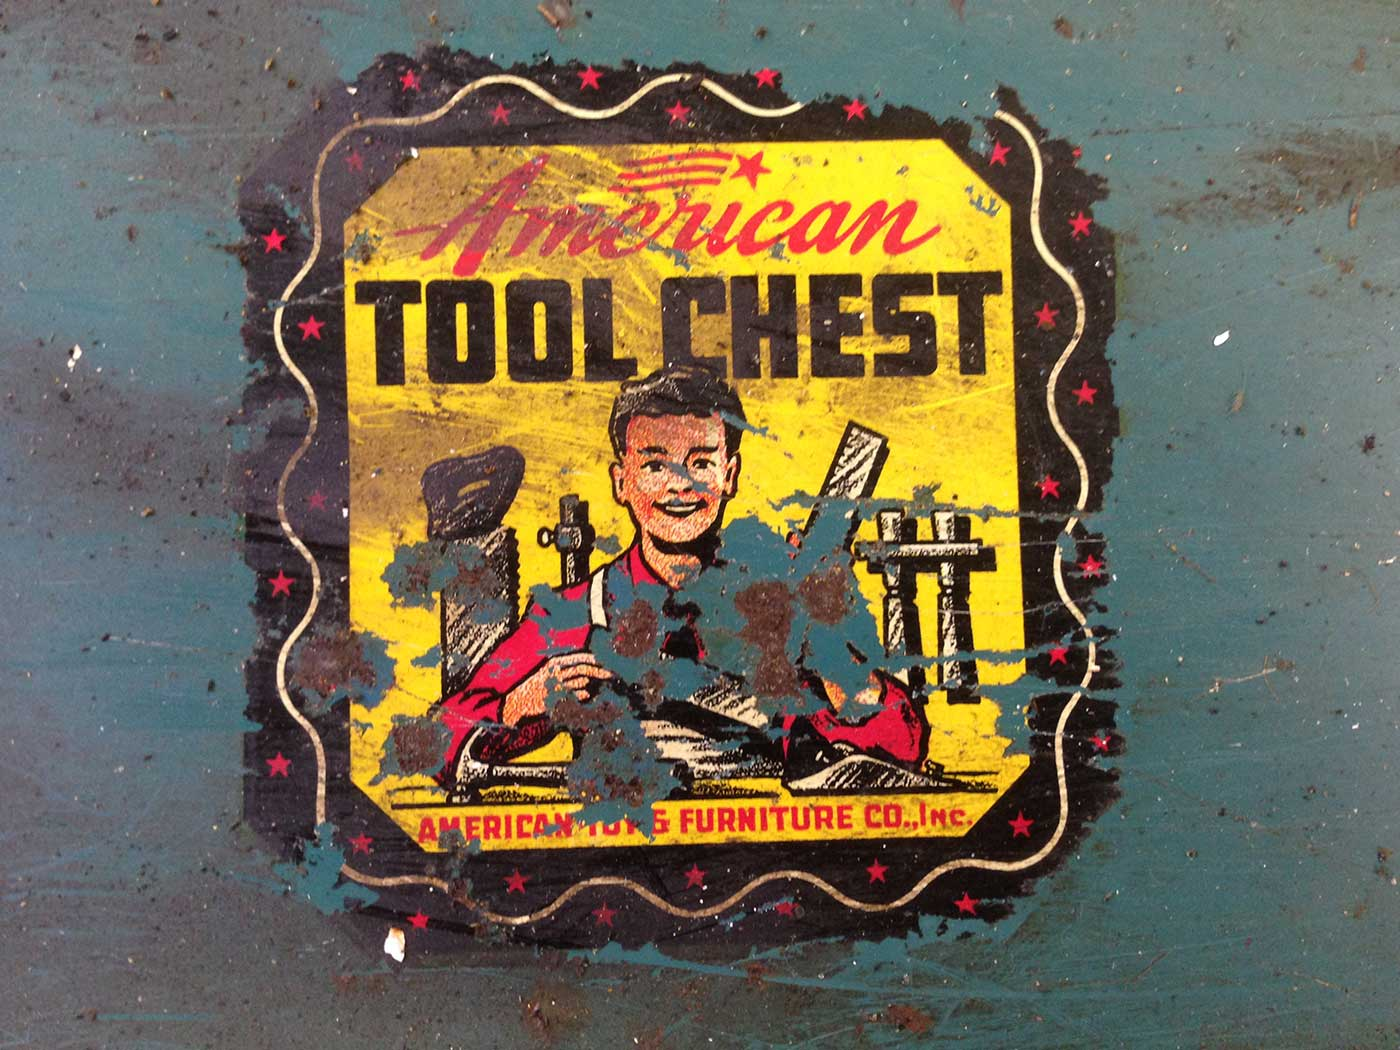 Tool Chest image